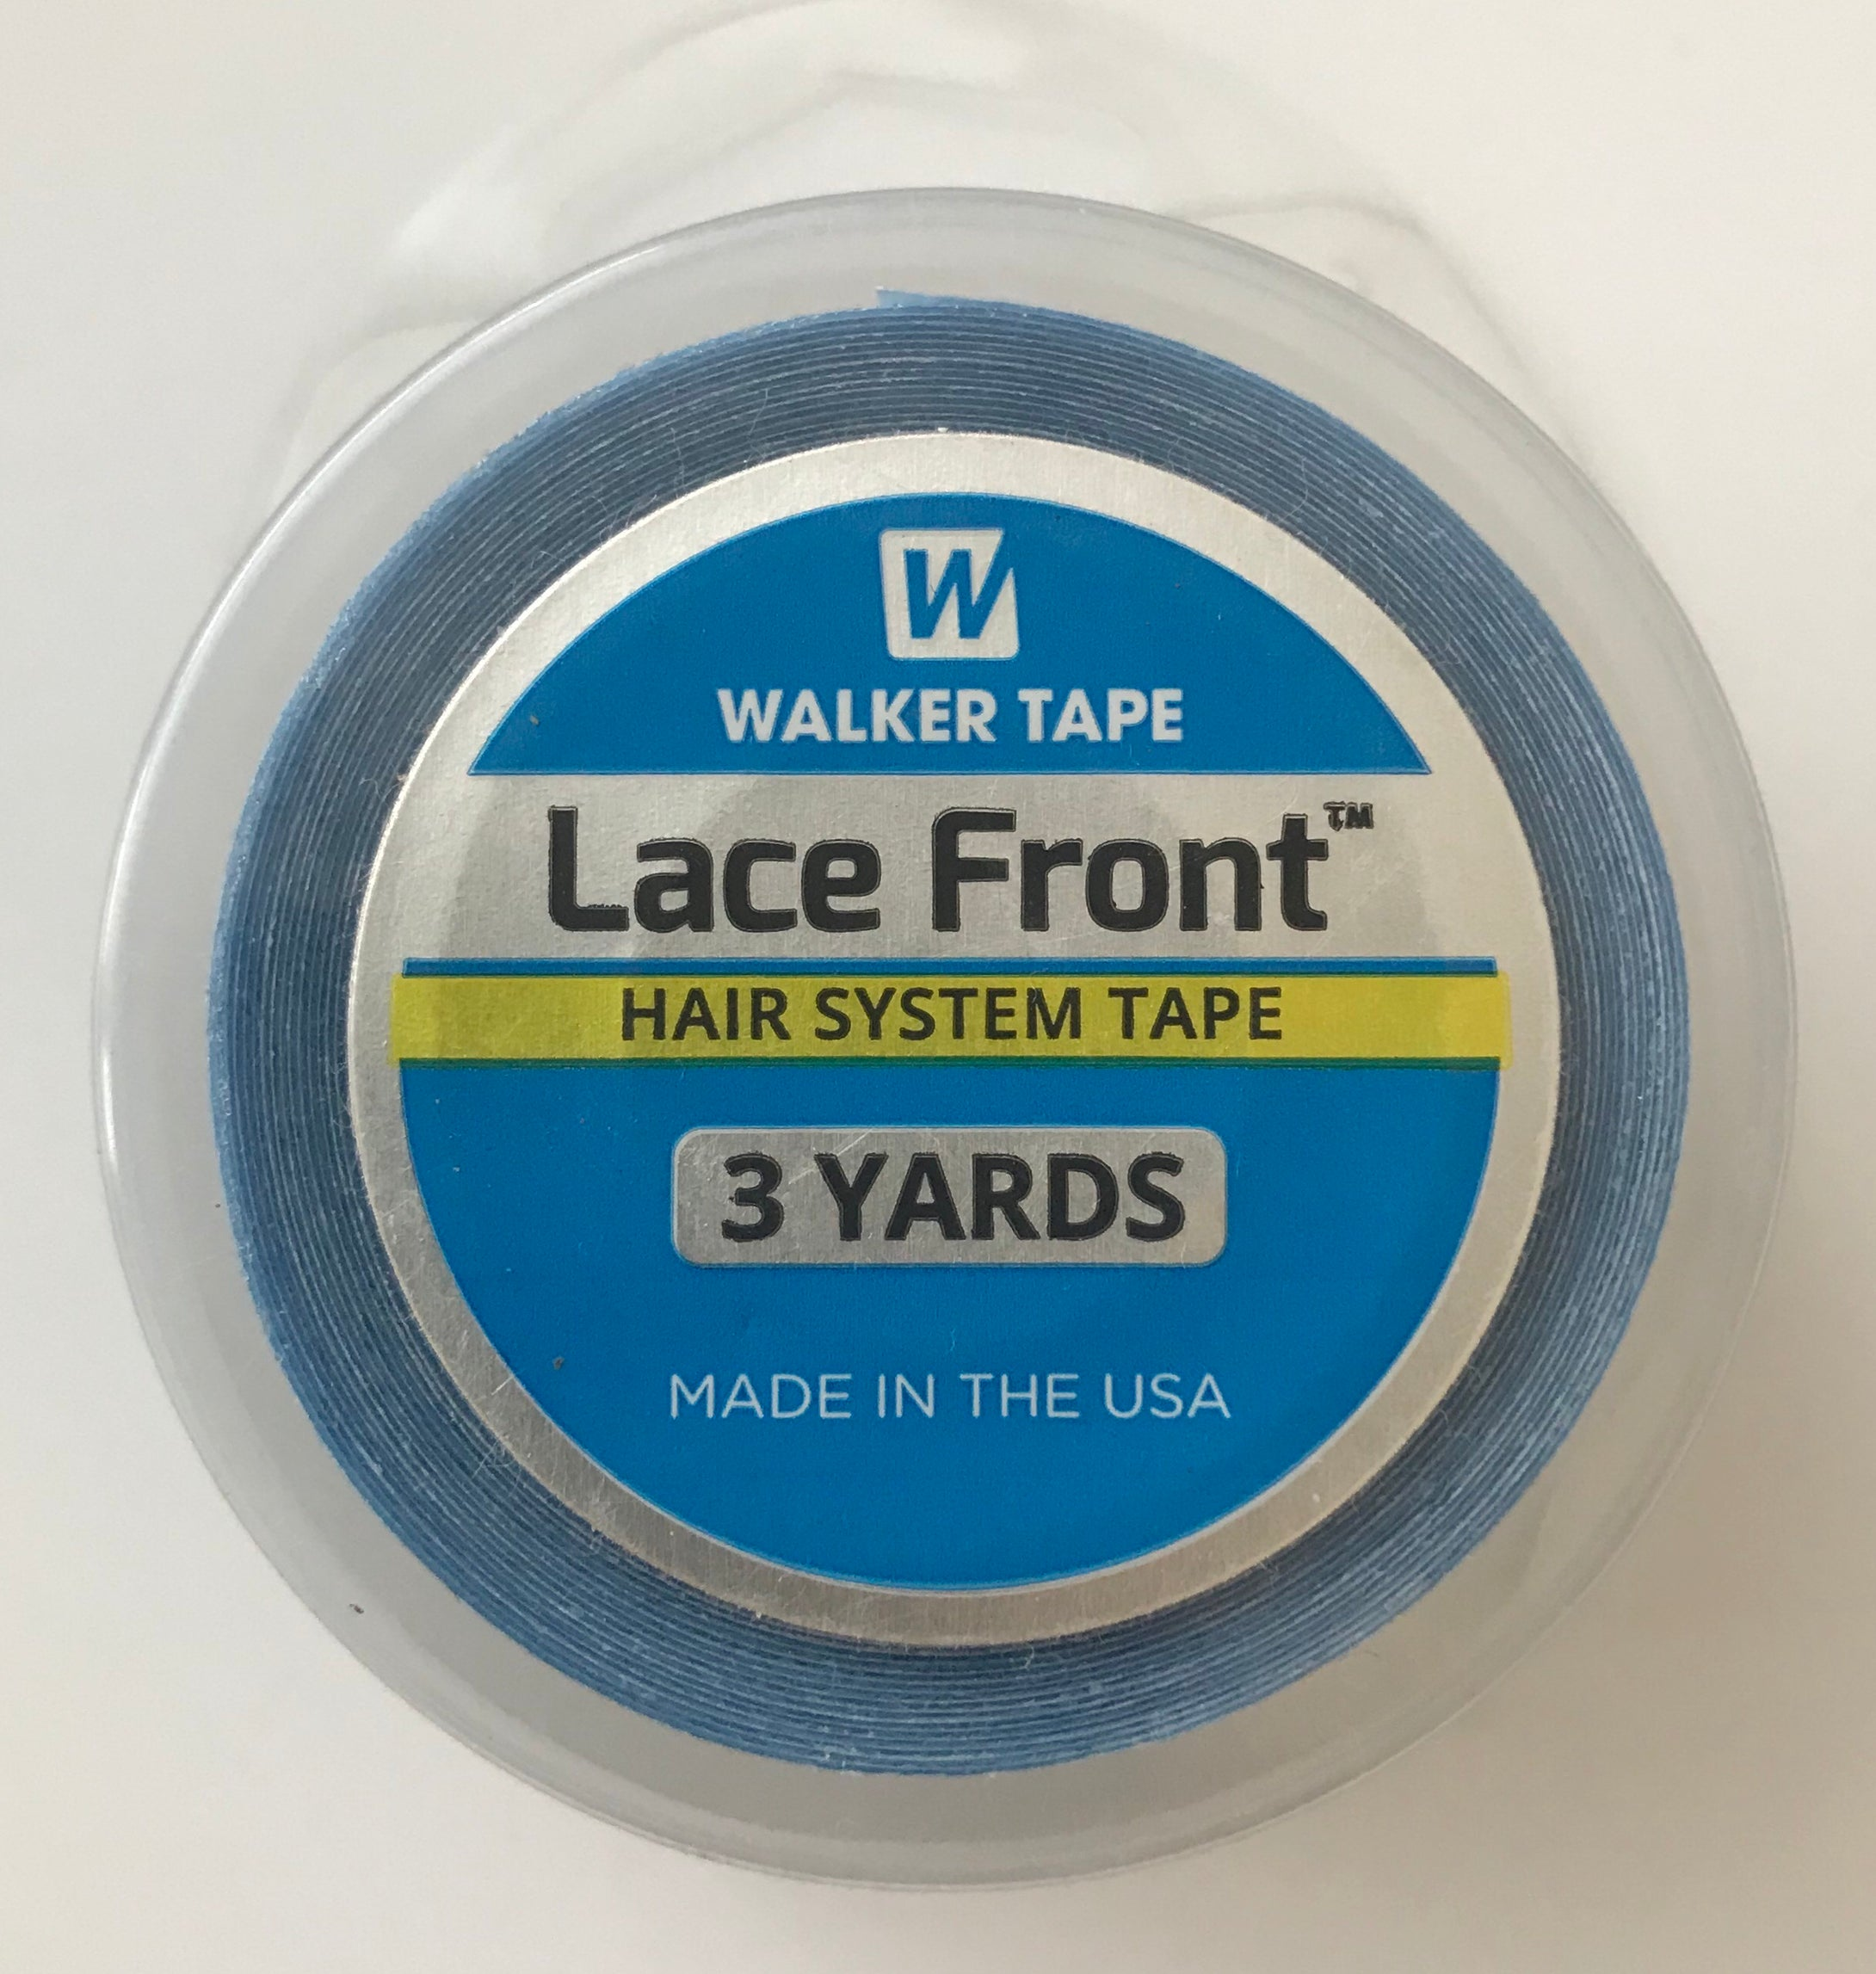 1 inch Lace Front Hair System Tape 3 Yard